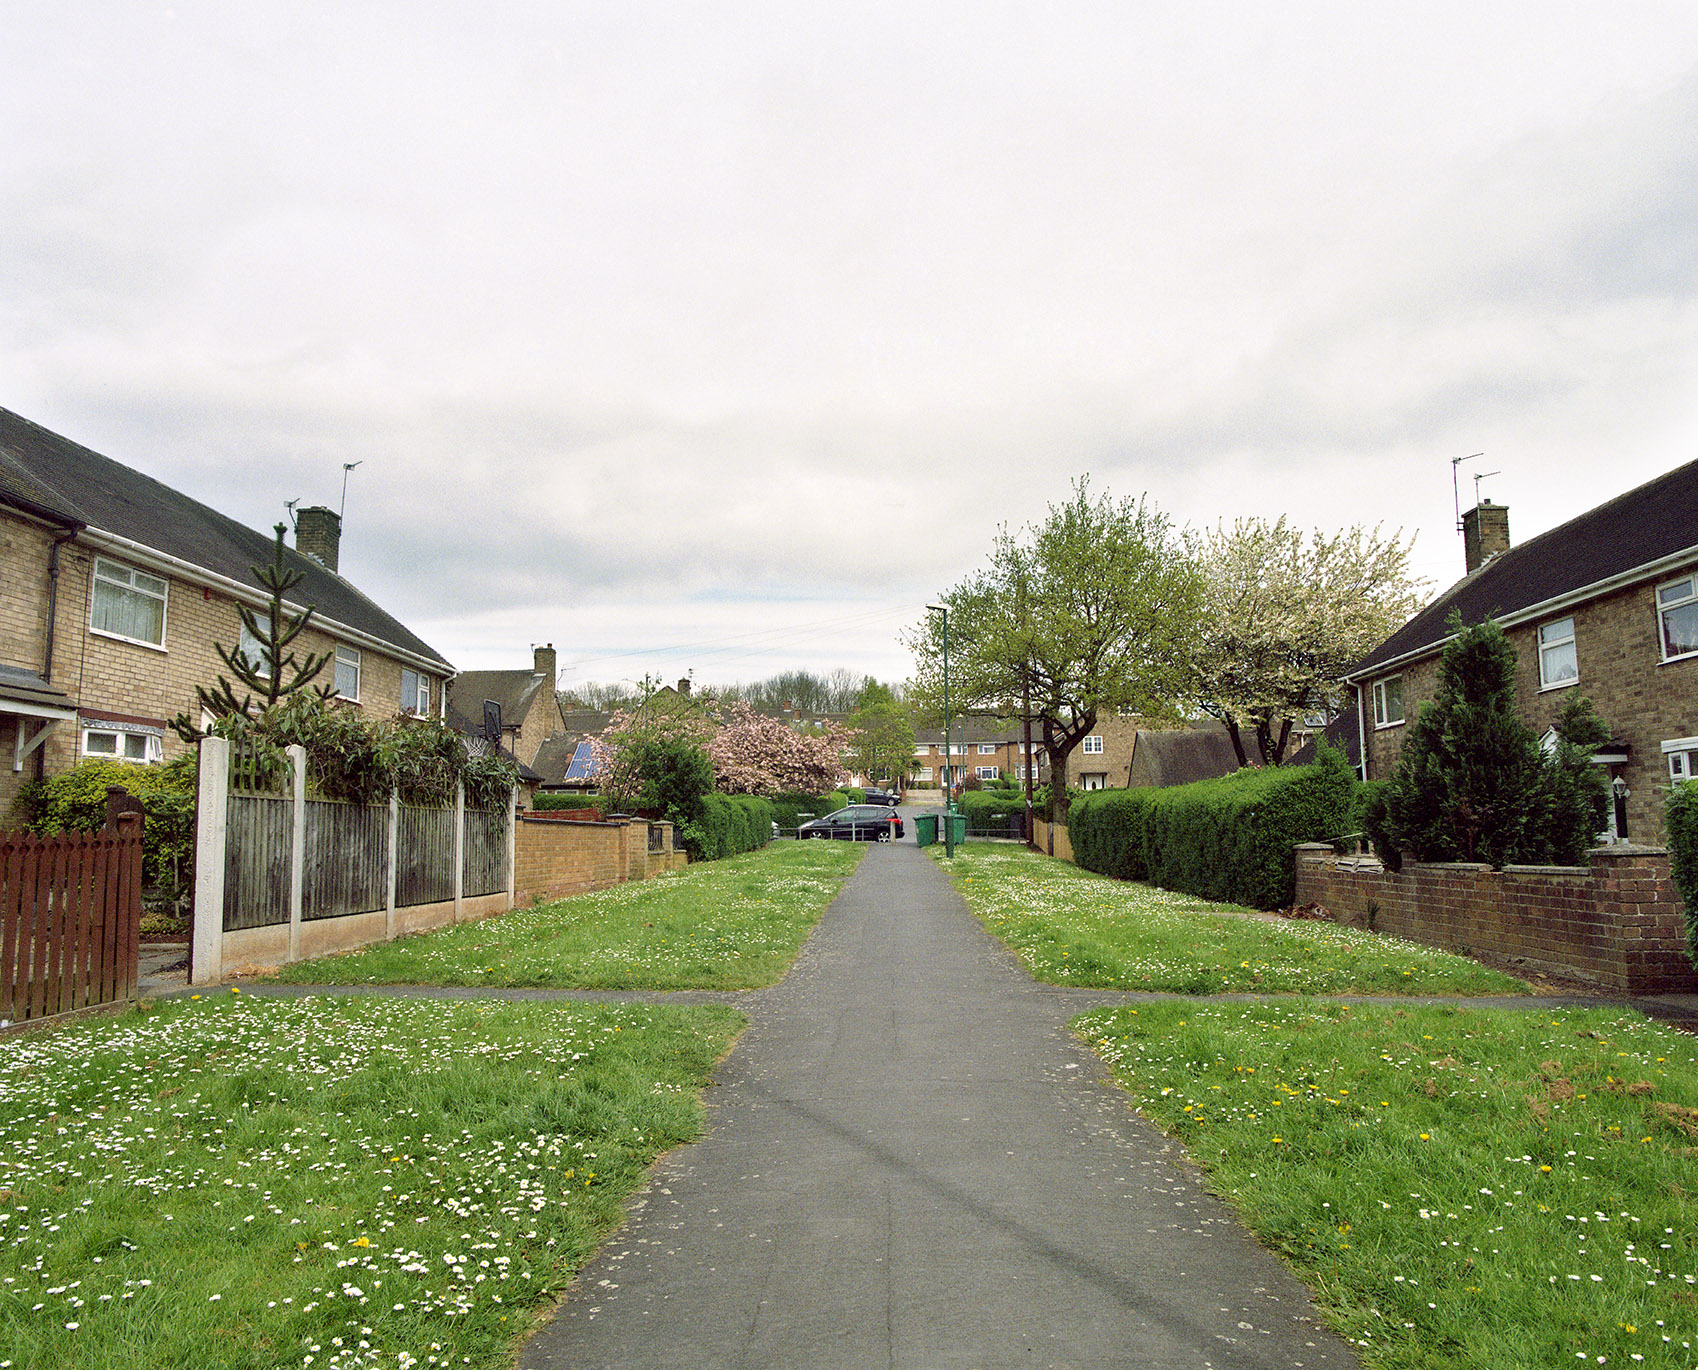 Image of a pathway between housing